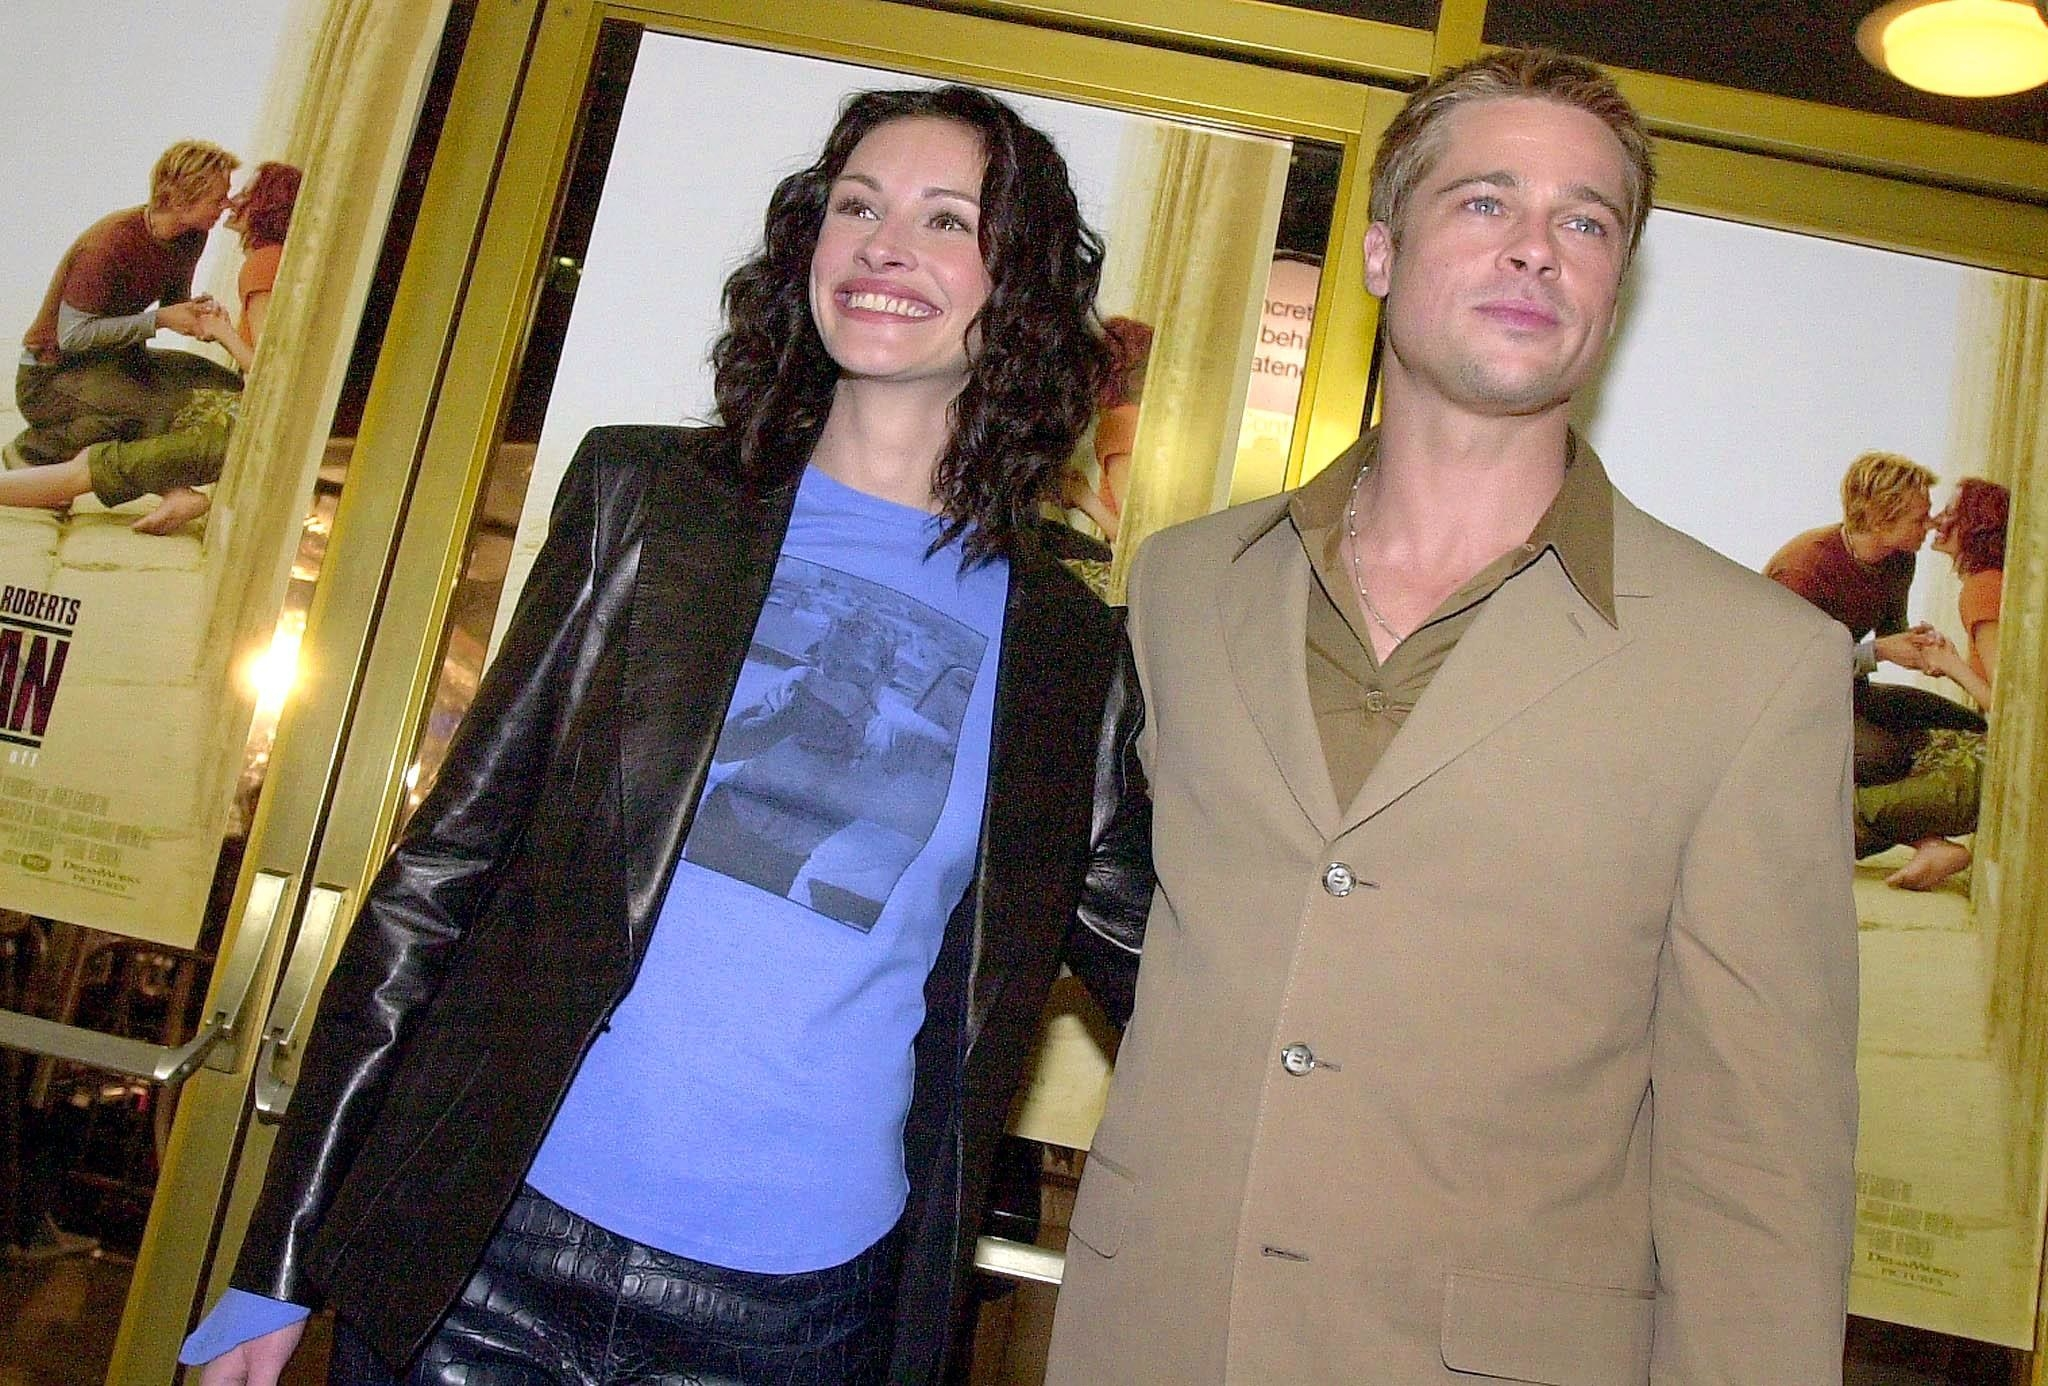 Brad Pitt and Julia Roberts in blazers on the red carpet